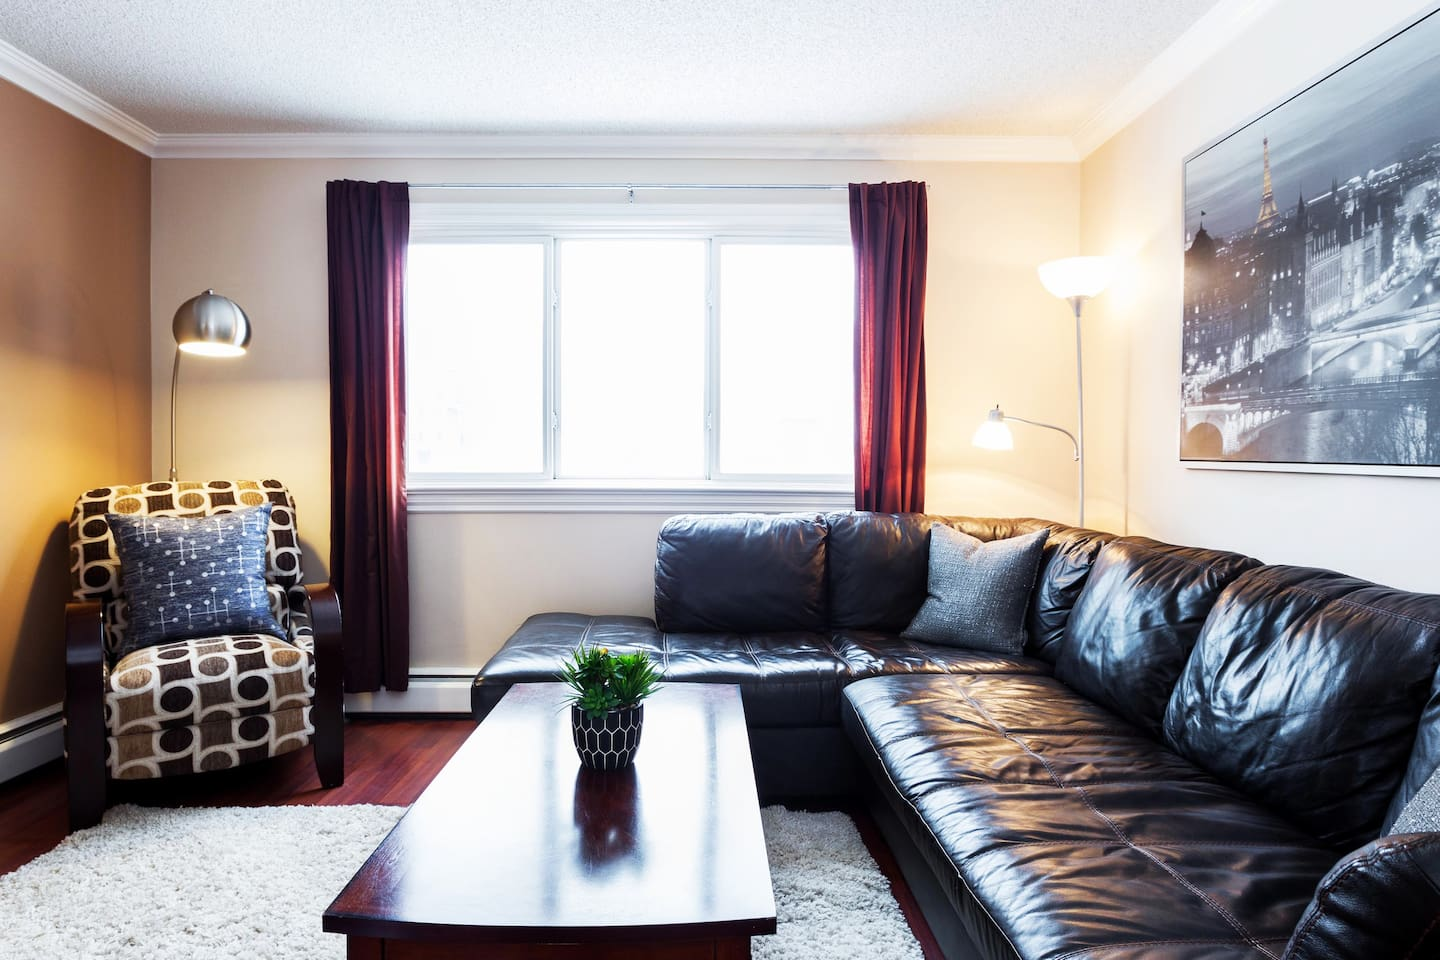 Your home away from home! Our stunning cozy 1 bed + 1 bath condo just off of Whyte Ave - located in one of the most vibrant districts in all of Edmonton!